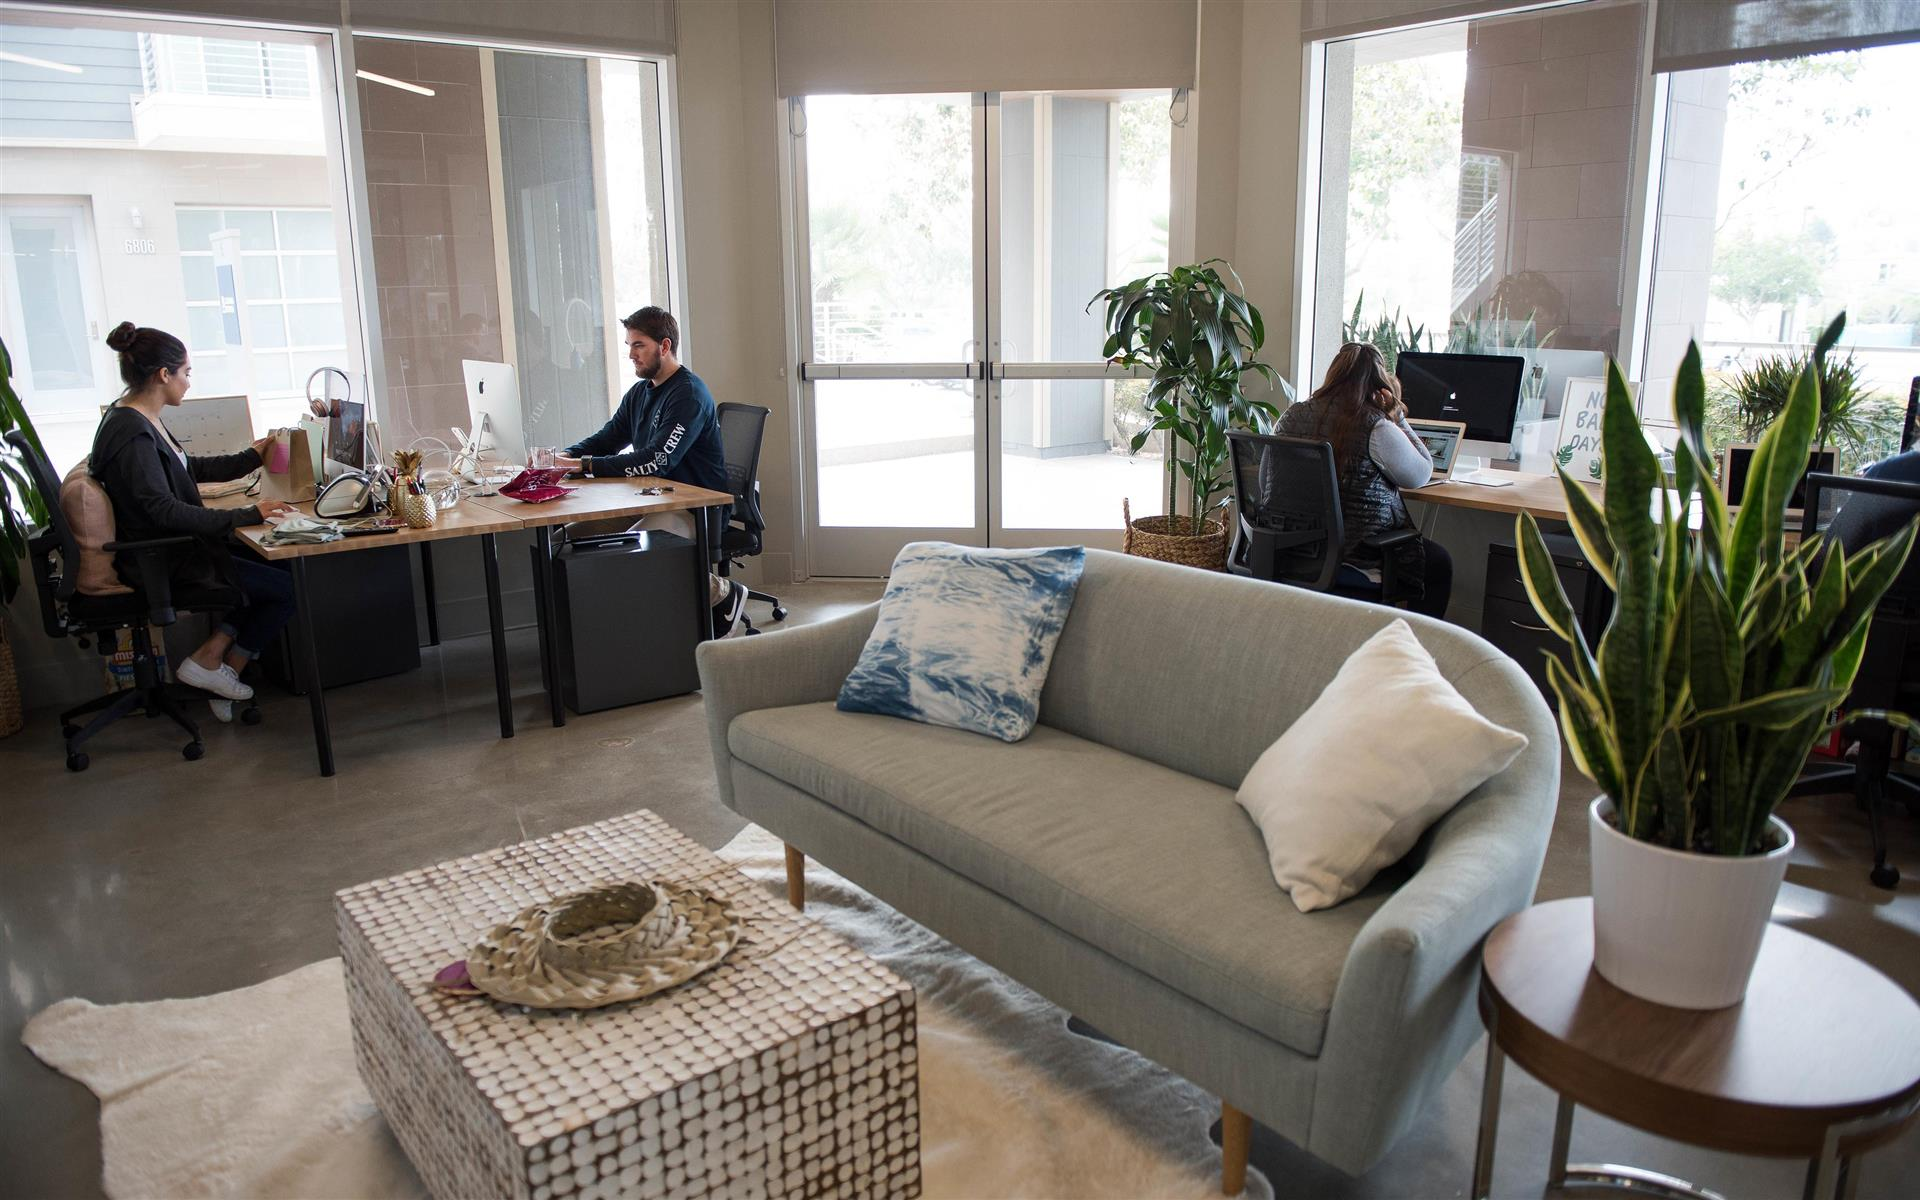 CommonGrounds Workspace - Anchor Space   8-10 person